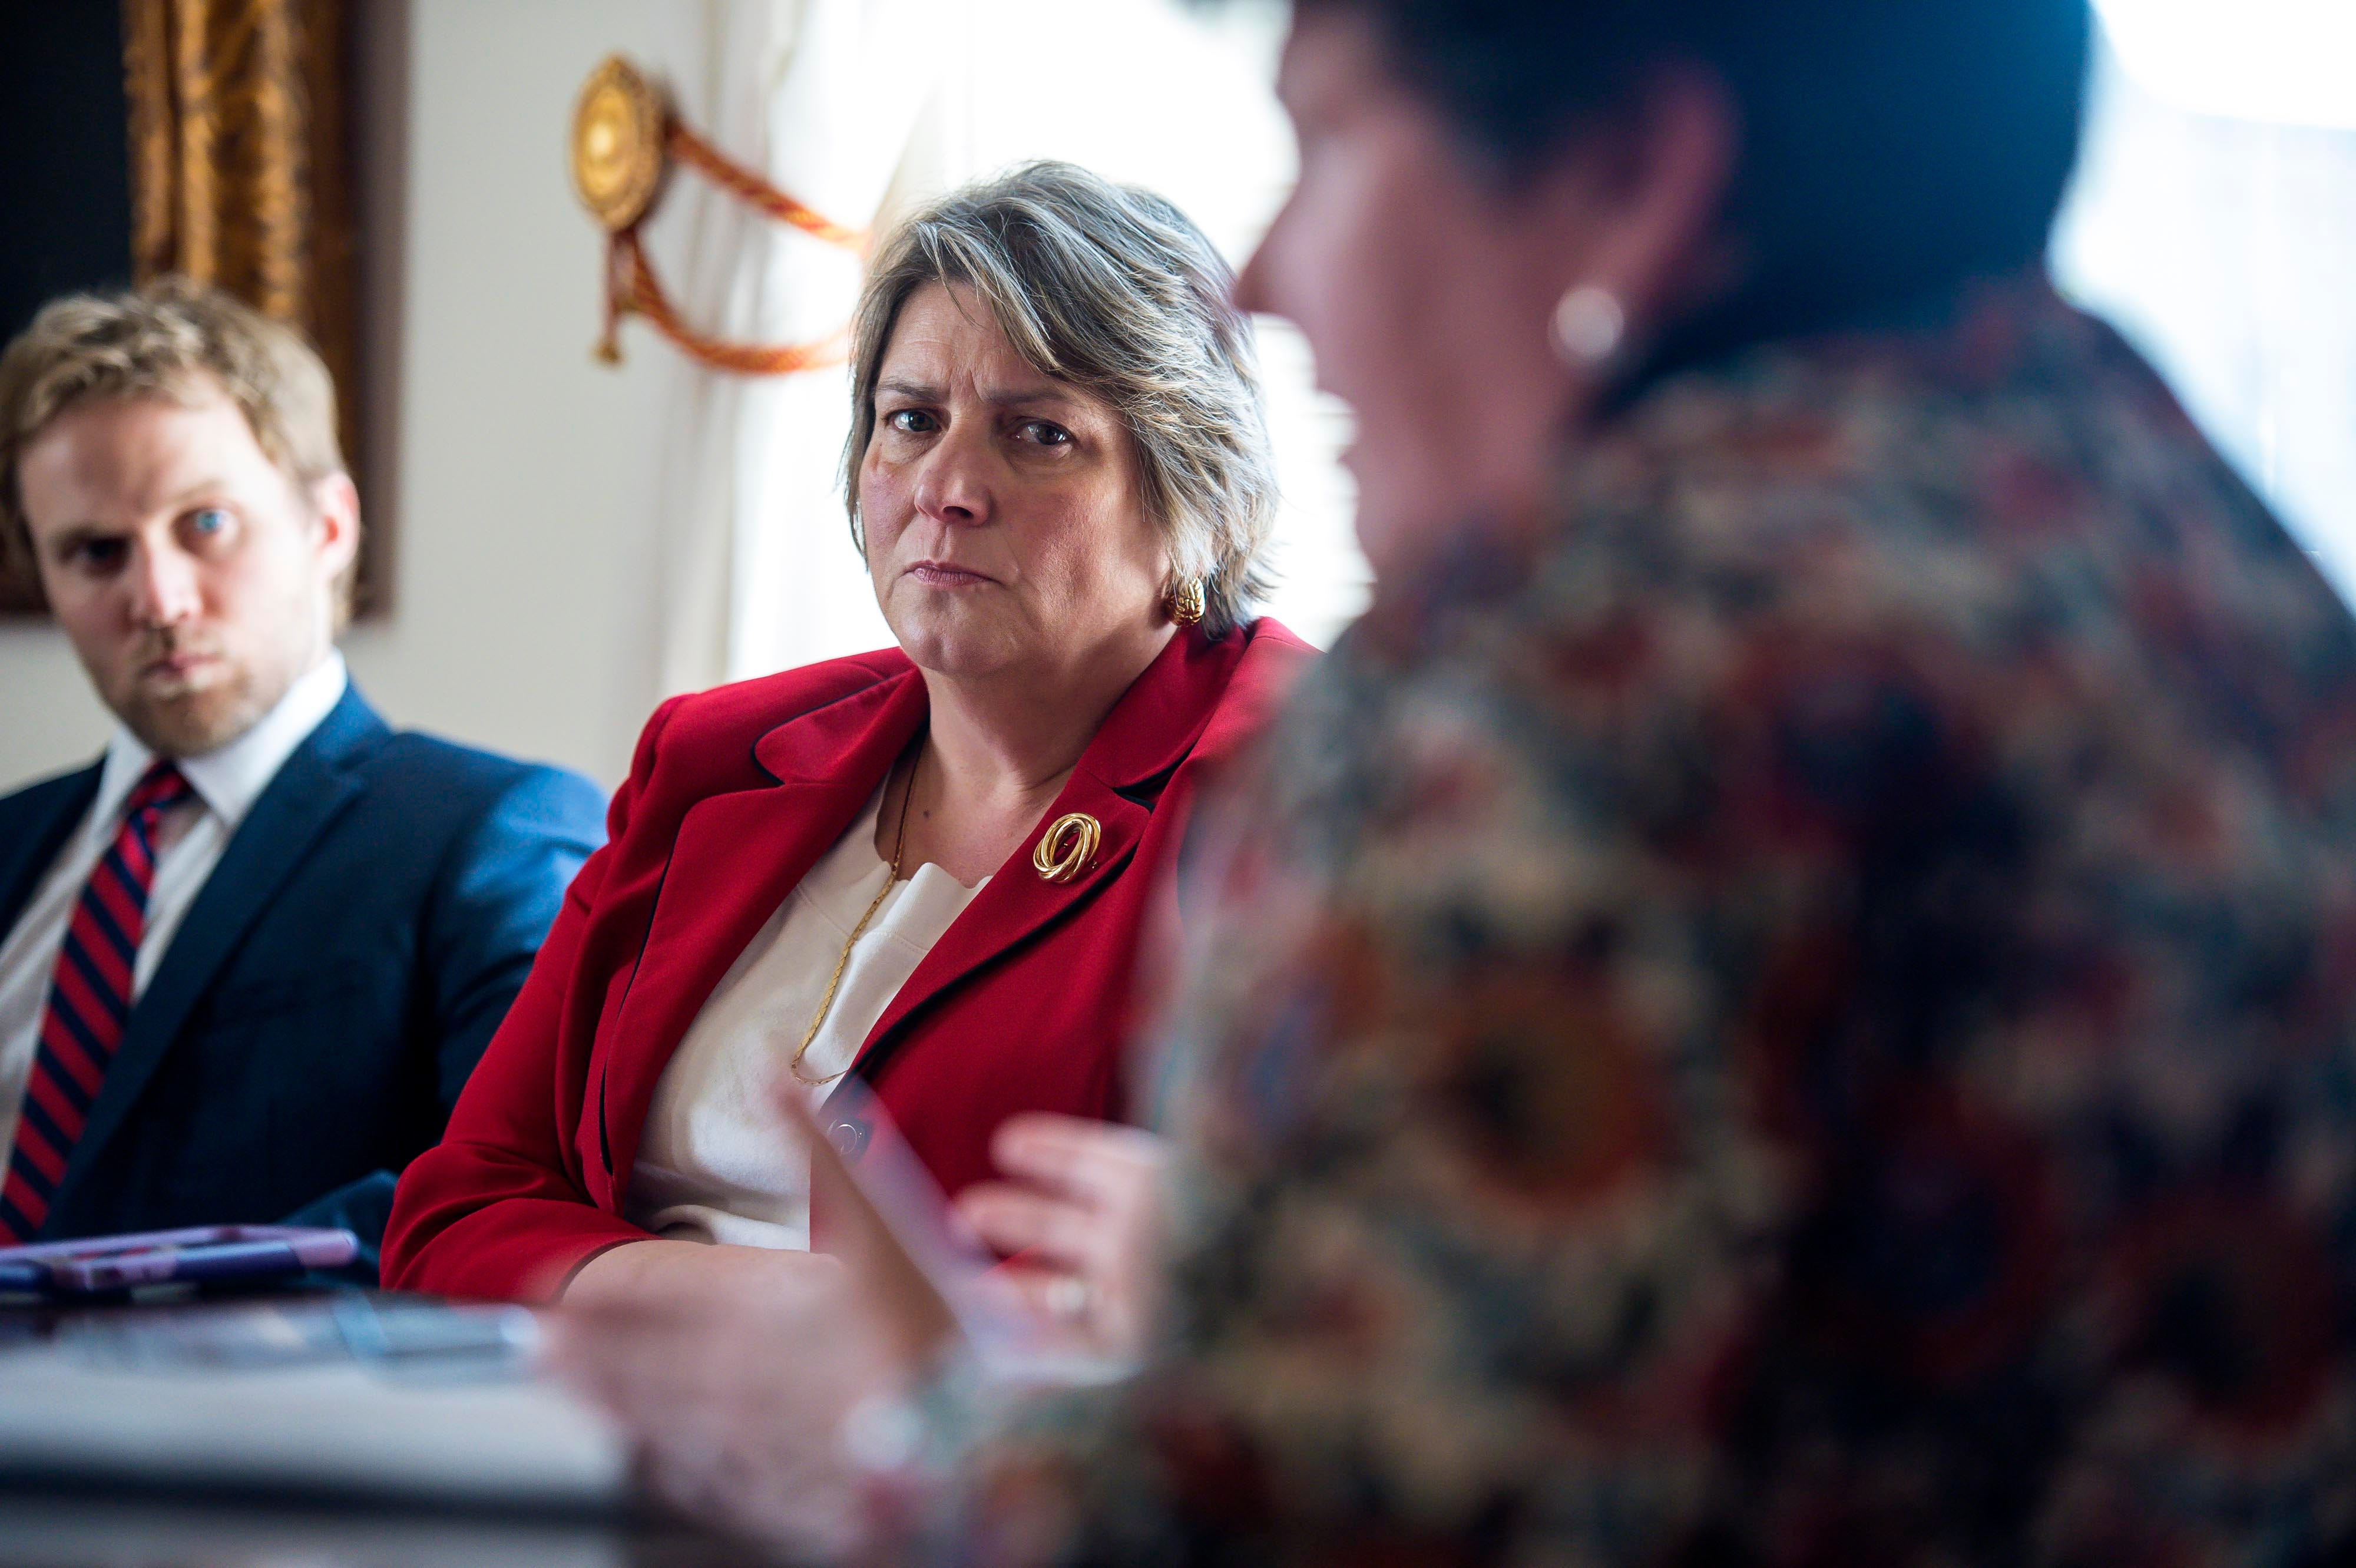 Patricia Moulton, Secretary of the Agency of Commerce and Community Development, center, discusses the Shumlin administration's oversight of the EB-5 program during an interview at the Statehouse in Montpelier on Wednesday, April 20, 2016.